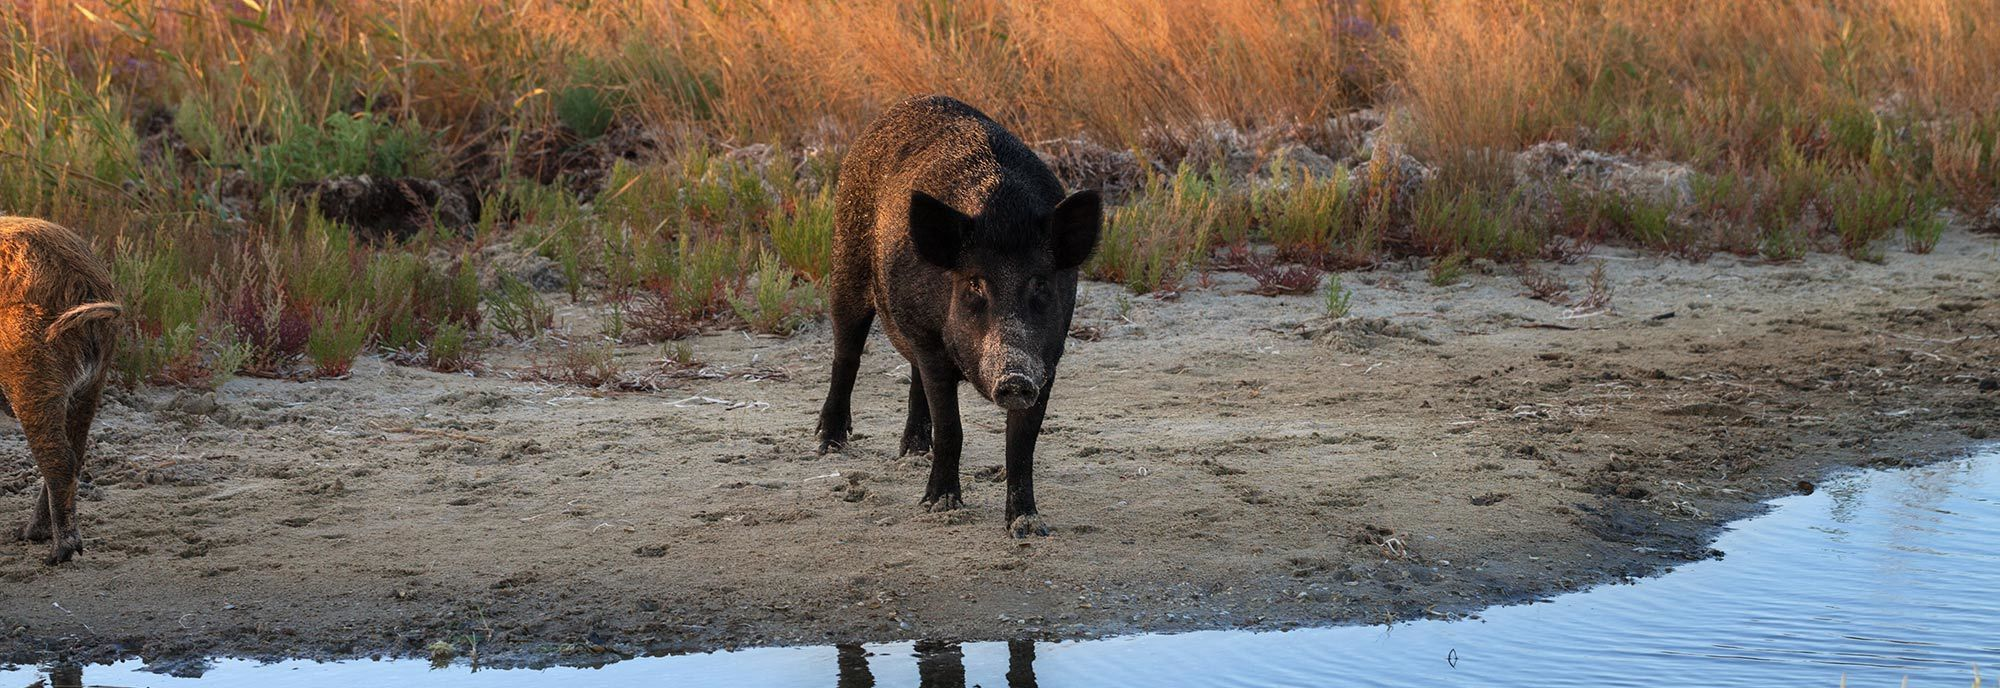 Wild Boar - Wild Hog - standing next to water